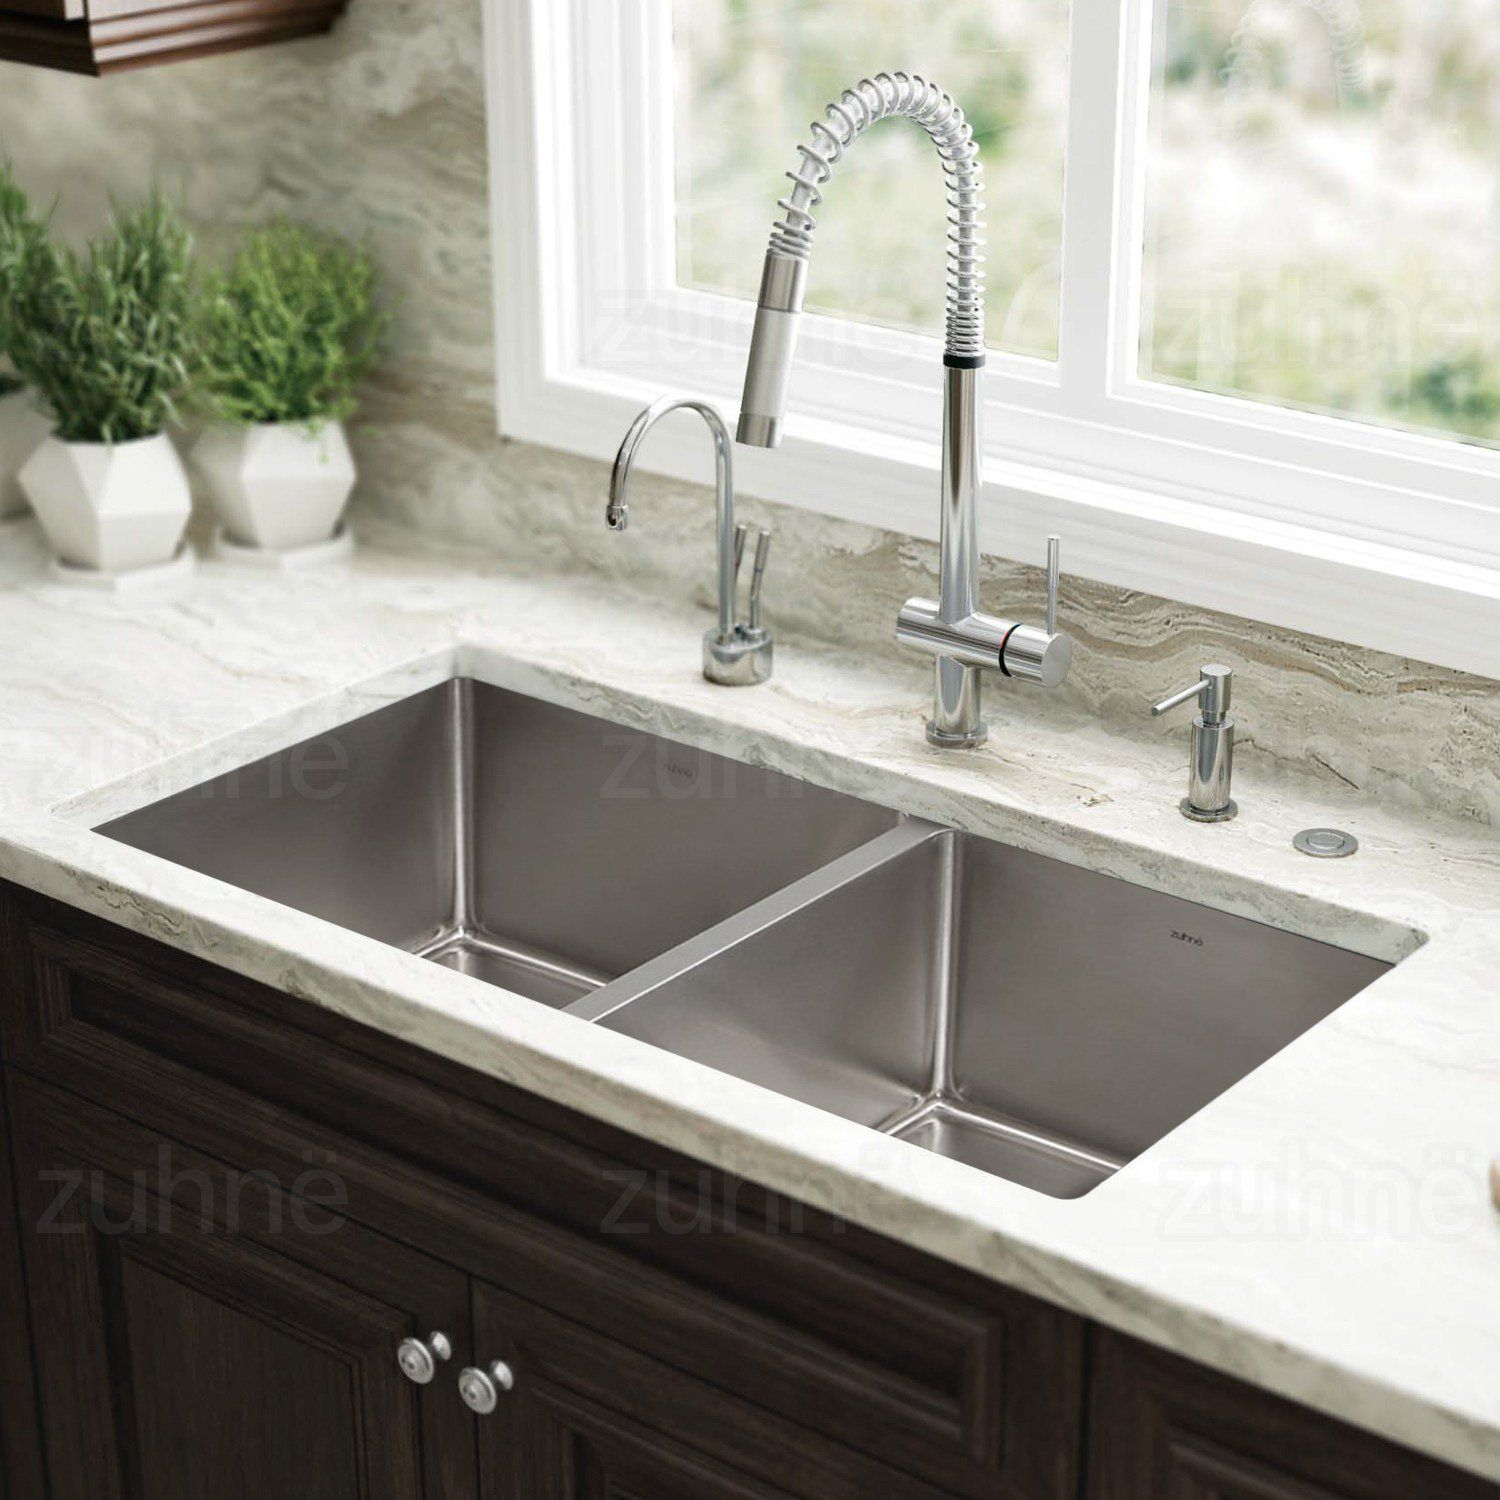 Zuhne 32 Inch Undermount 50 50 Deep Double Bowl 16 Gauge Stainless Steel Modern Kitchen Sink Best Kitchen Sinks Undermount Kitchen Sinks Kitchen Sink Design